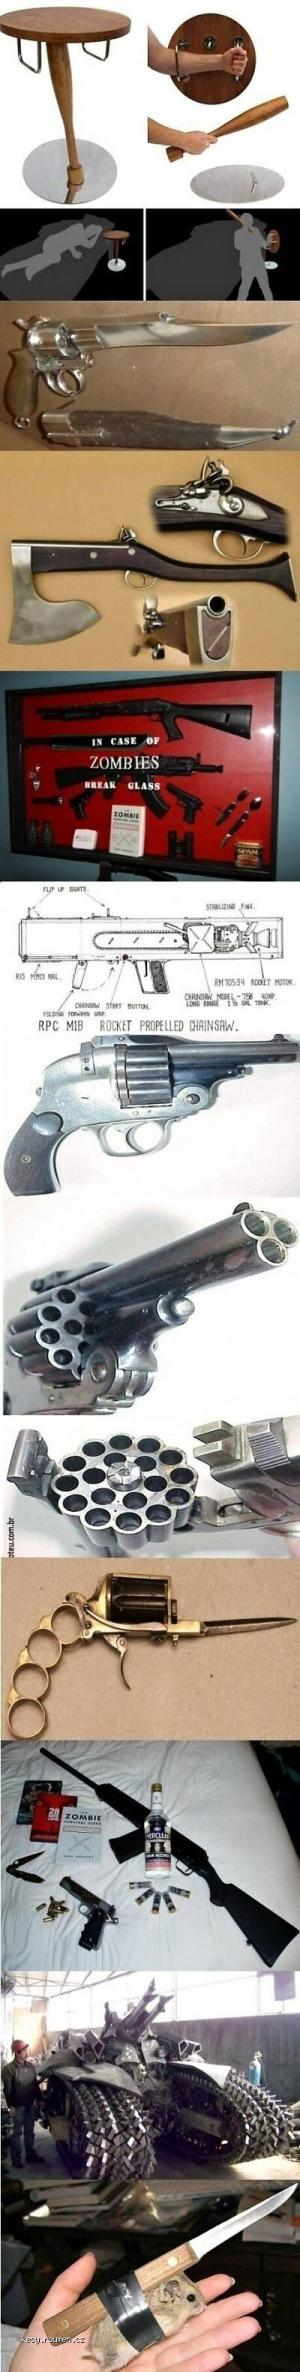 Weapons For When The Zombie Apocalypse Comes